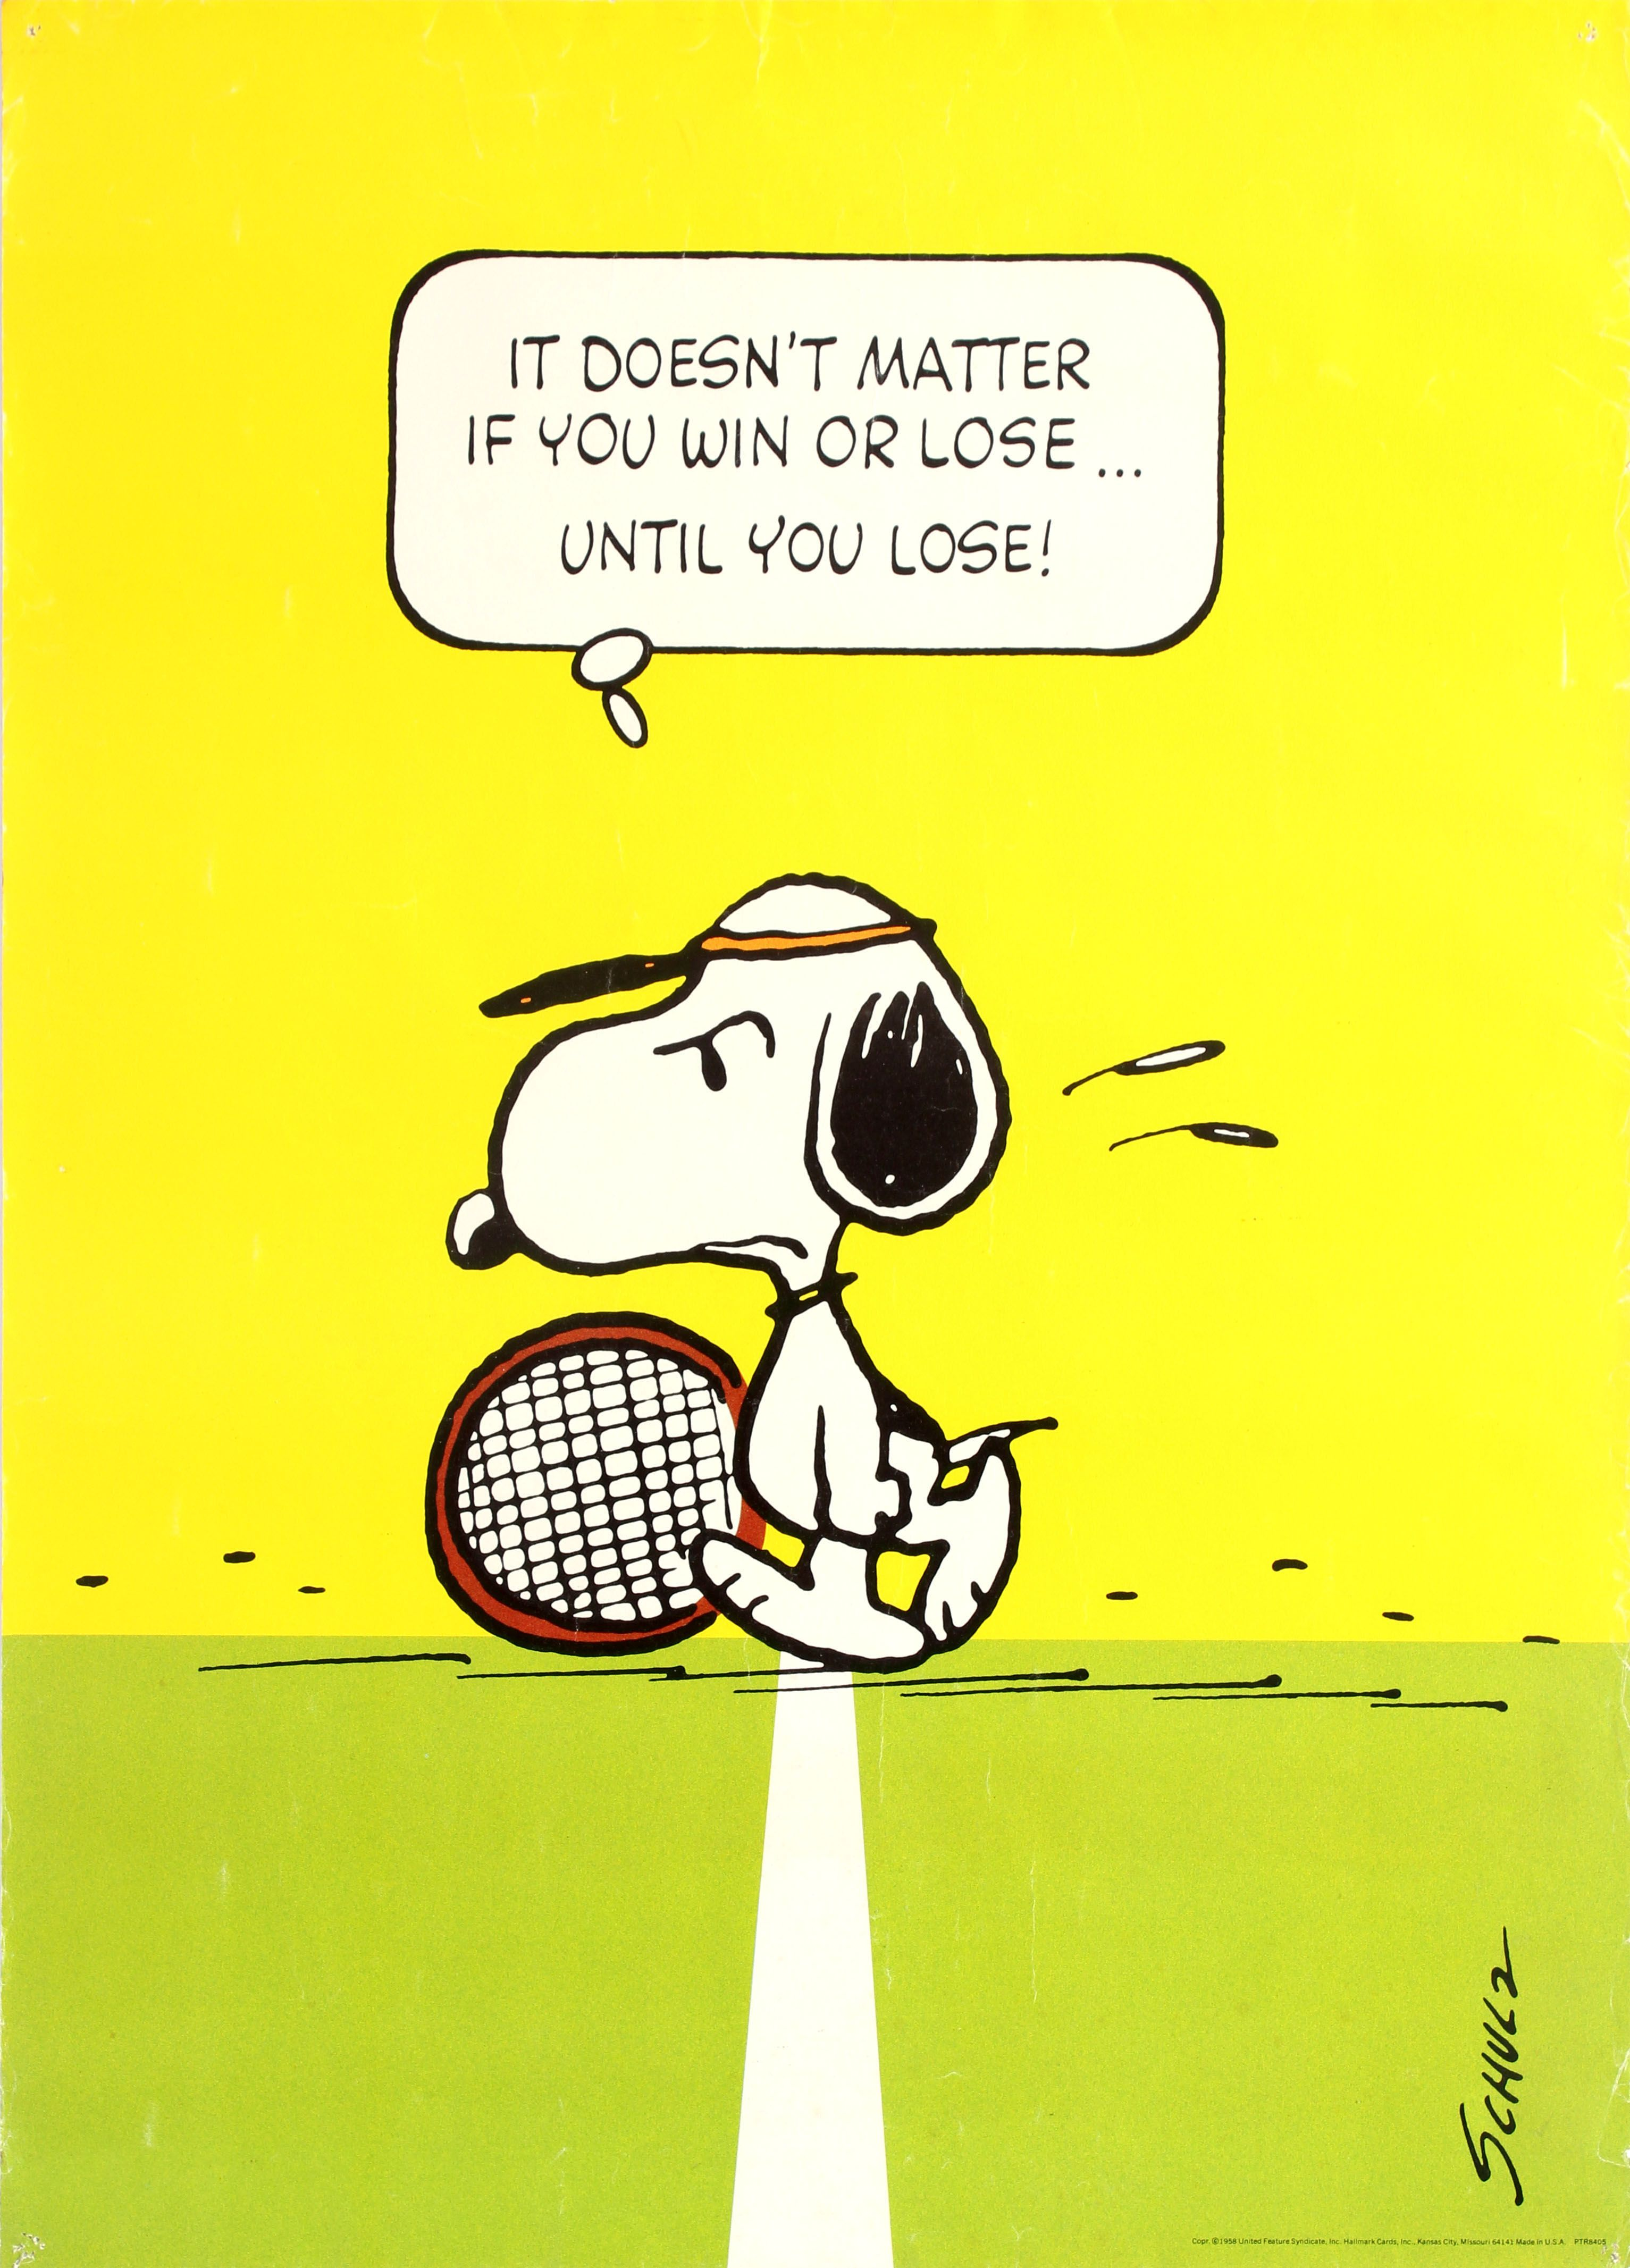 Snoopy Tennis Win Or Lose Schulz 1958 Original Vintage Poster By Charles M Schulz Listed On Antikbar Co Uk Tennis Quotes Funny Tennis Quotes Tennis Funny